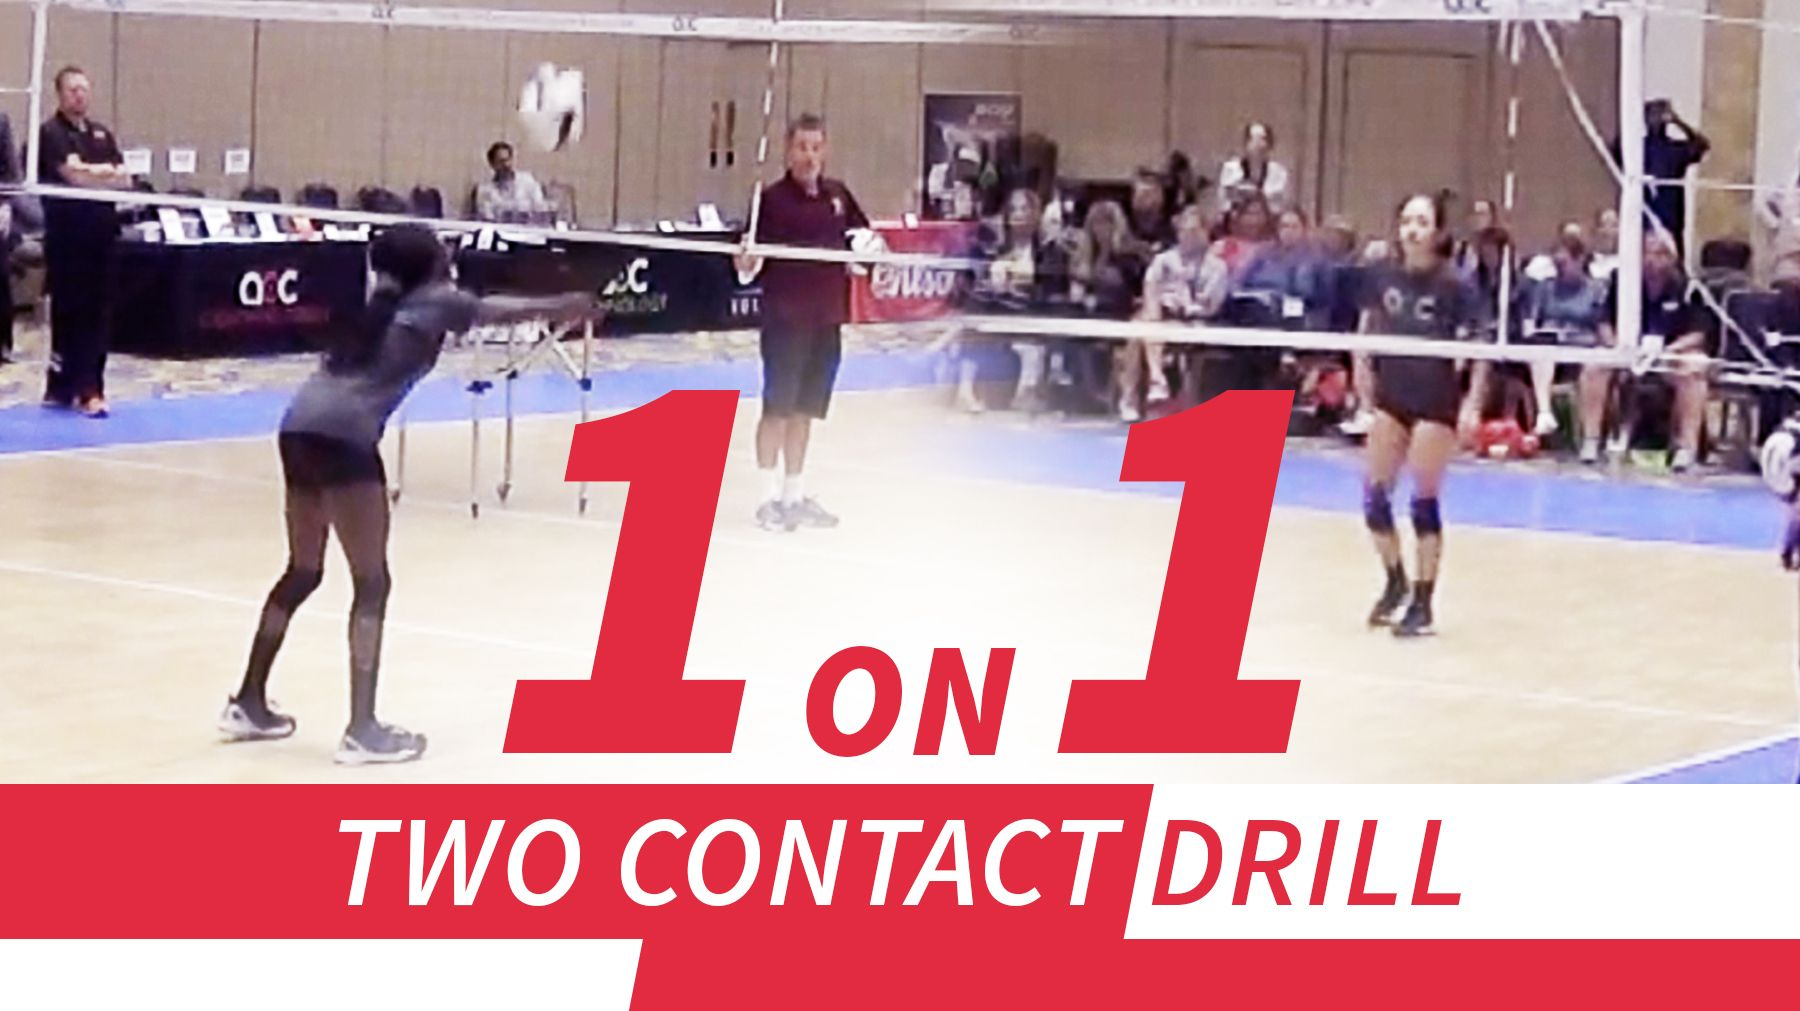 One On One Competitive Two Contact Drill The Art Of Coaching Volleyball Coaching Volleyball Volleyball Drills Volleyball